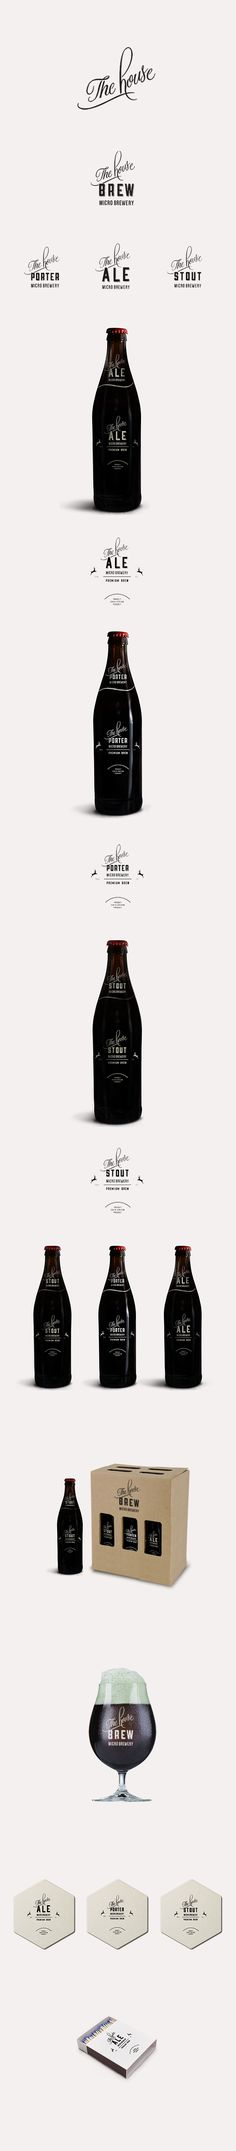 The House Brewery: CI & Packaging design by Louwrens Venter, via Behance